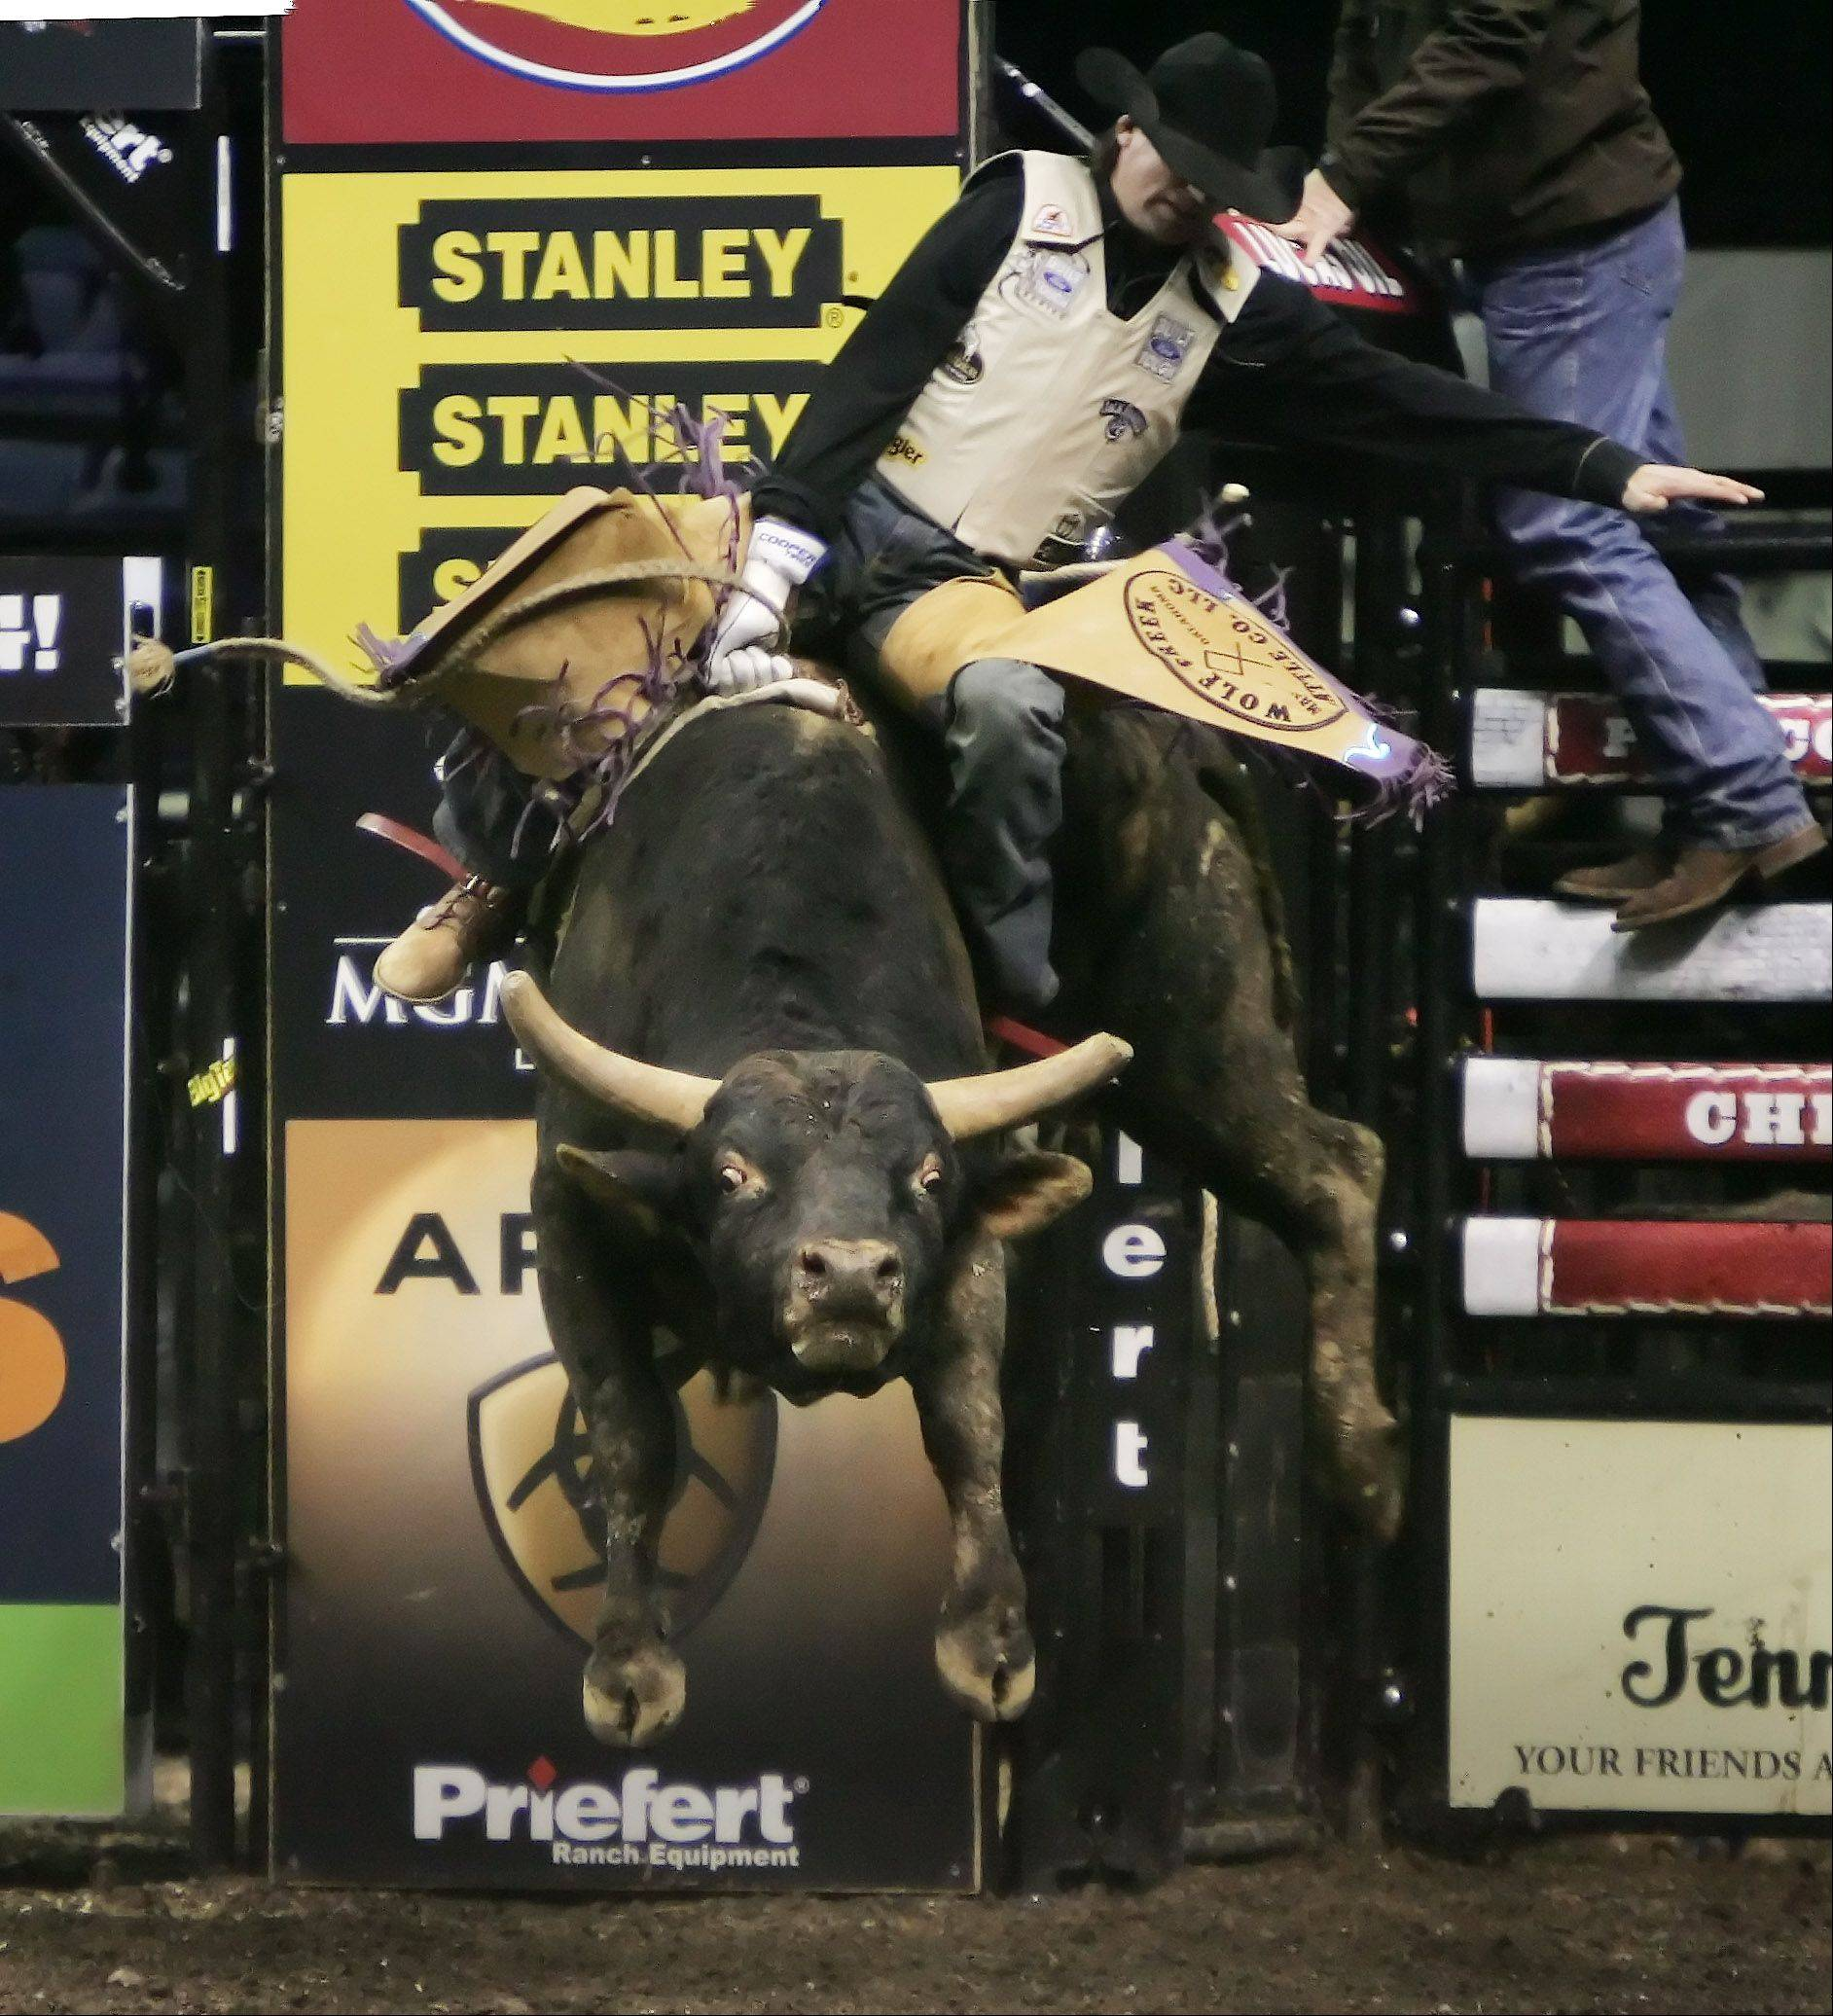 Ben Jones rides Bar Code during The Professional Bull Riders Chicago Invitational Sunday at the Allstate Arena in Rosemont. Riders from around the world competed in the arena riding 2,000 pound bulls.